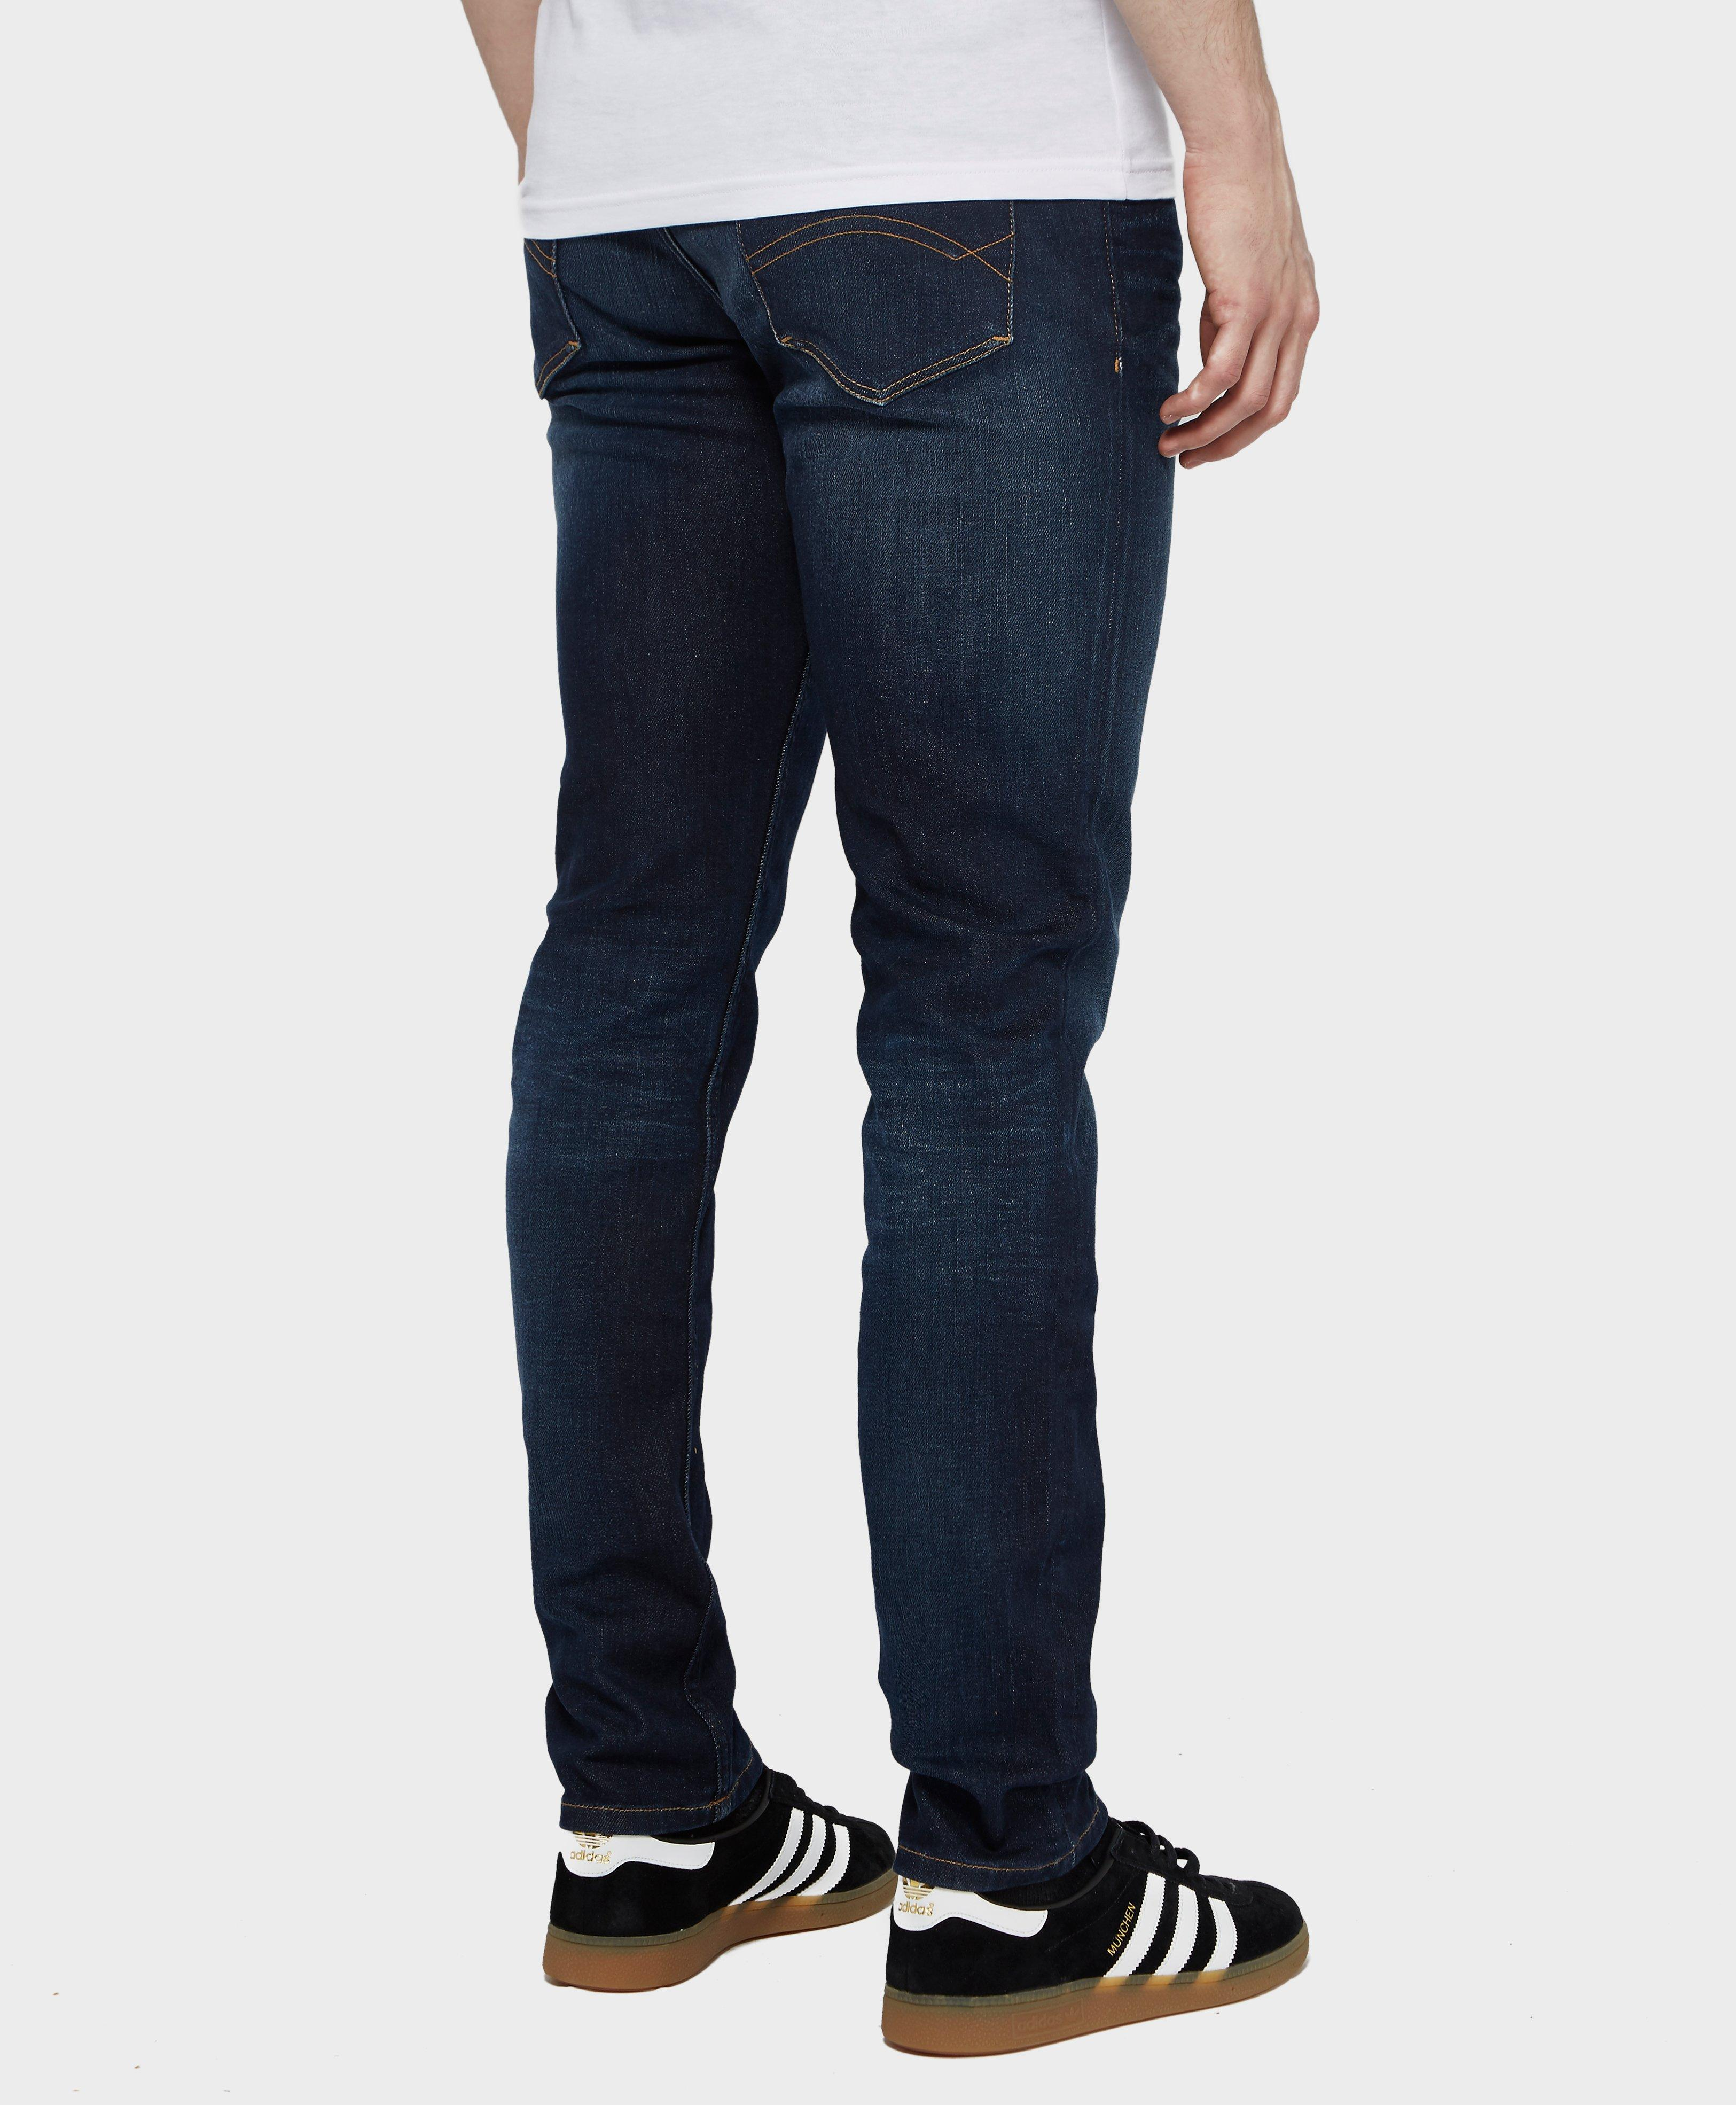 f4dcc41c Tommy Hilfiger Slim Tapered Steve Jeans in Blue for Men - Lyst